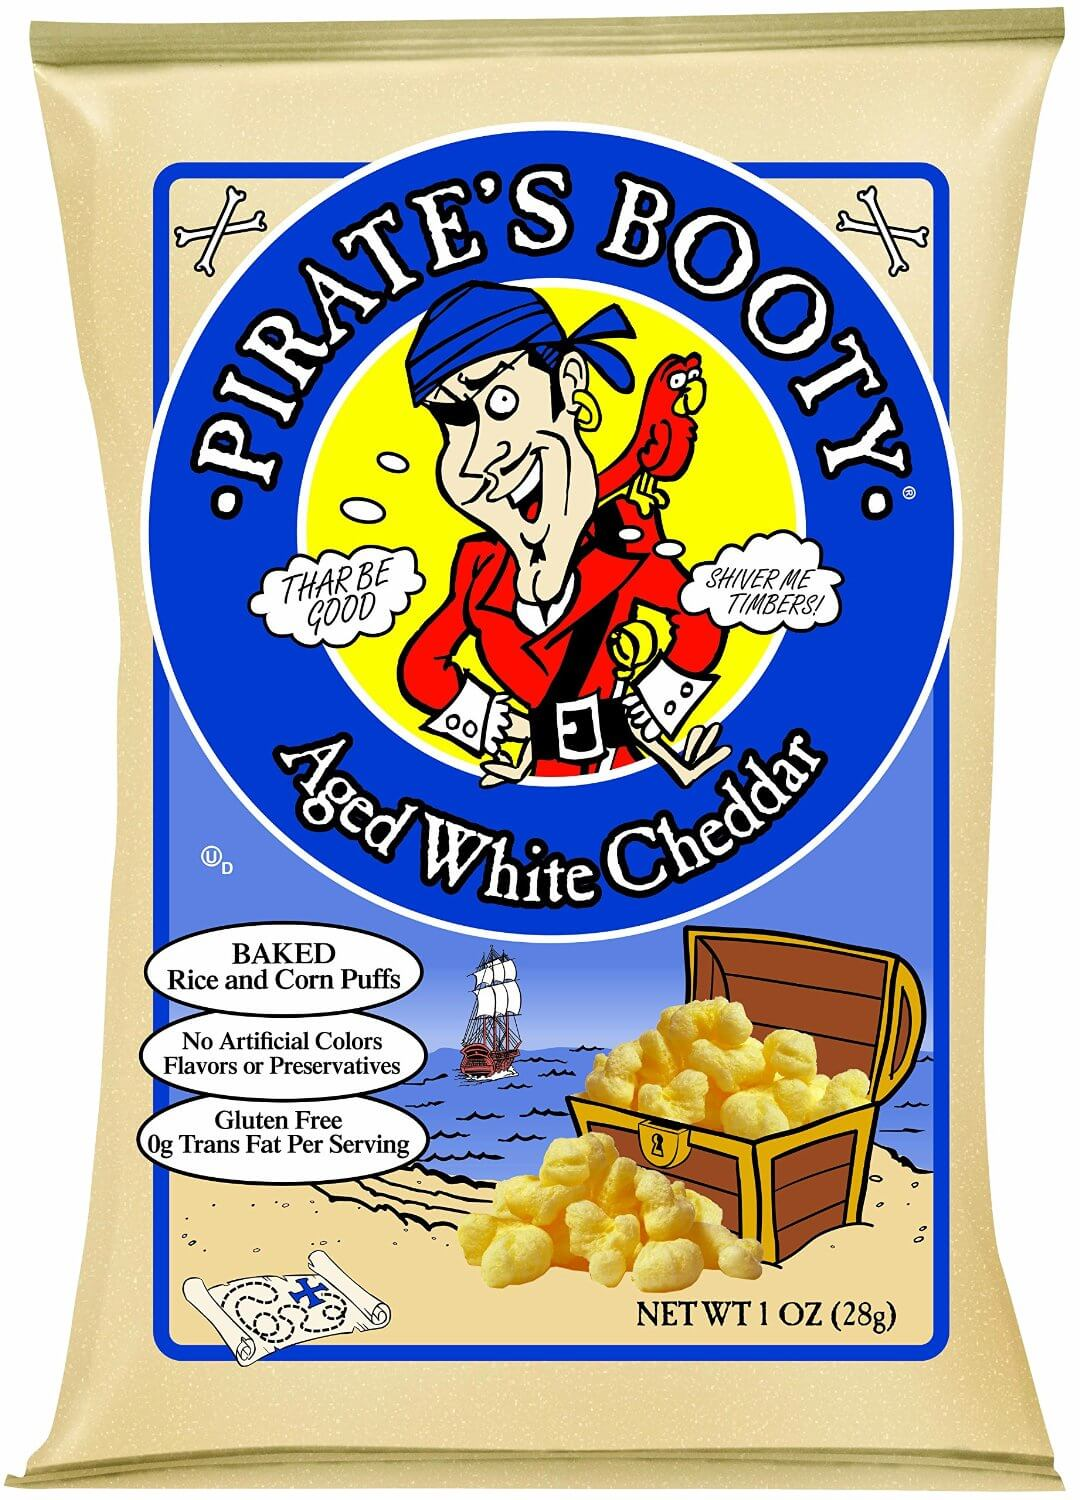 Pirate's Booty White Cheddar Rice & Corn Puffs